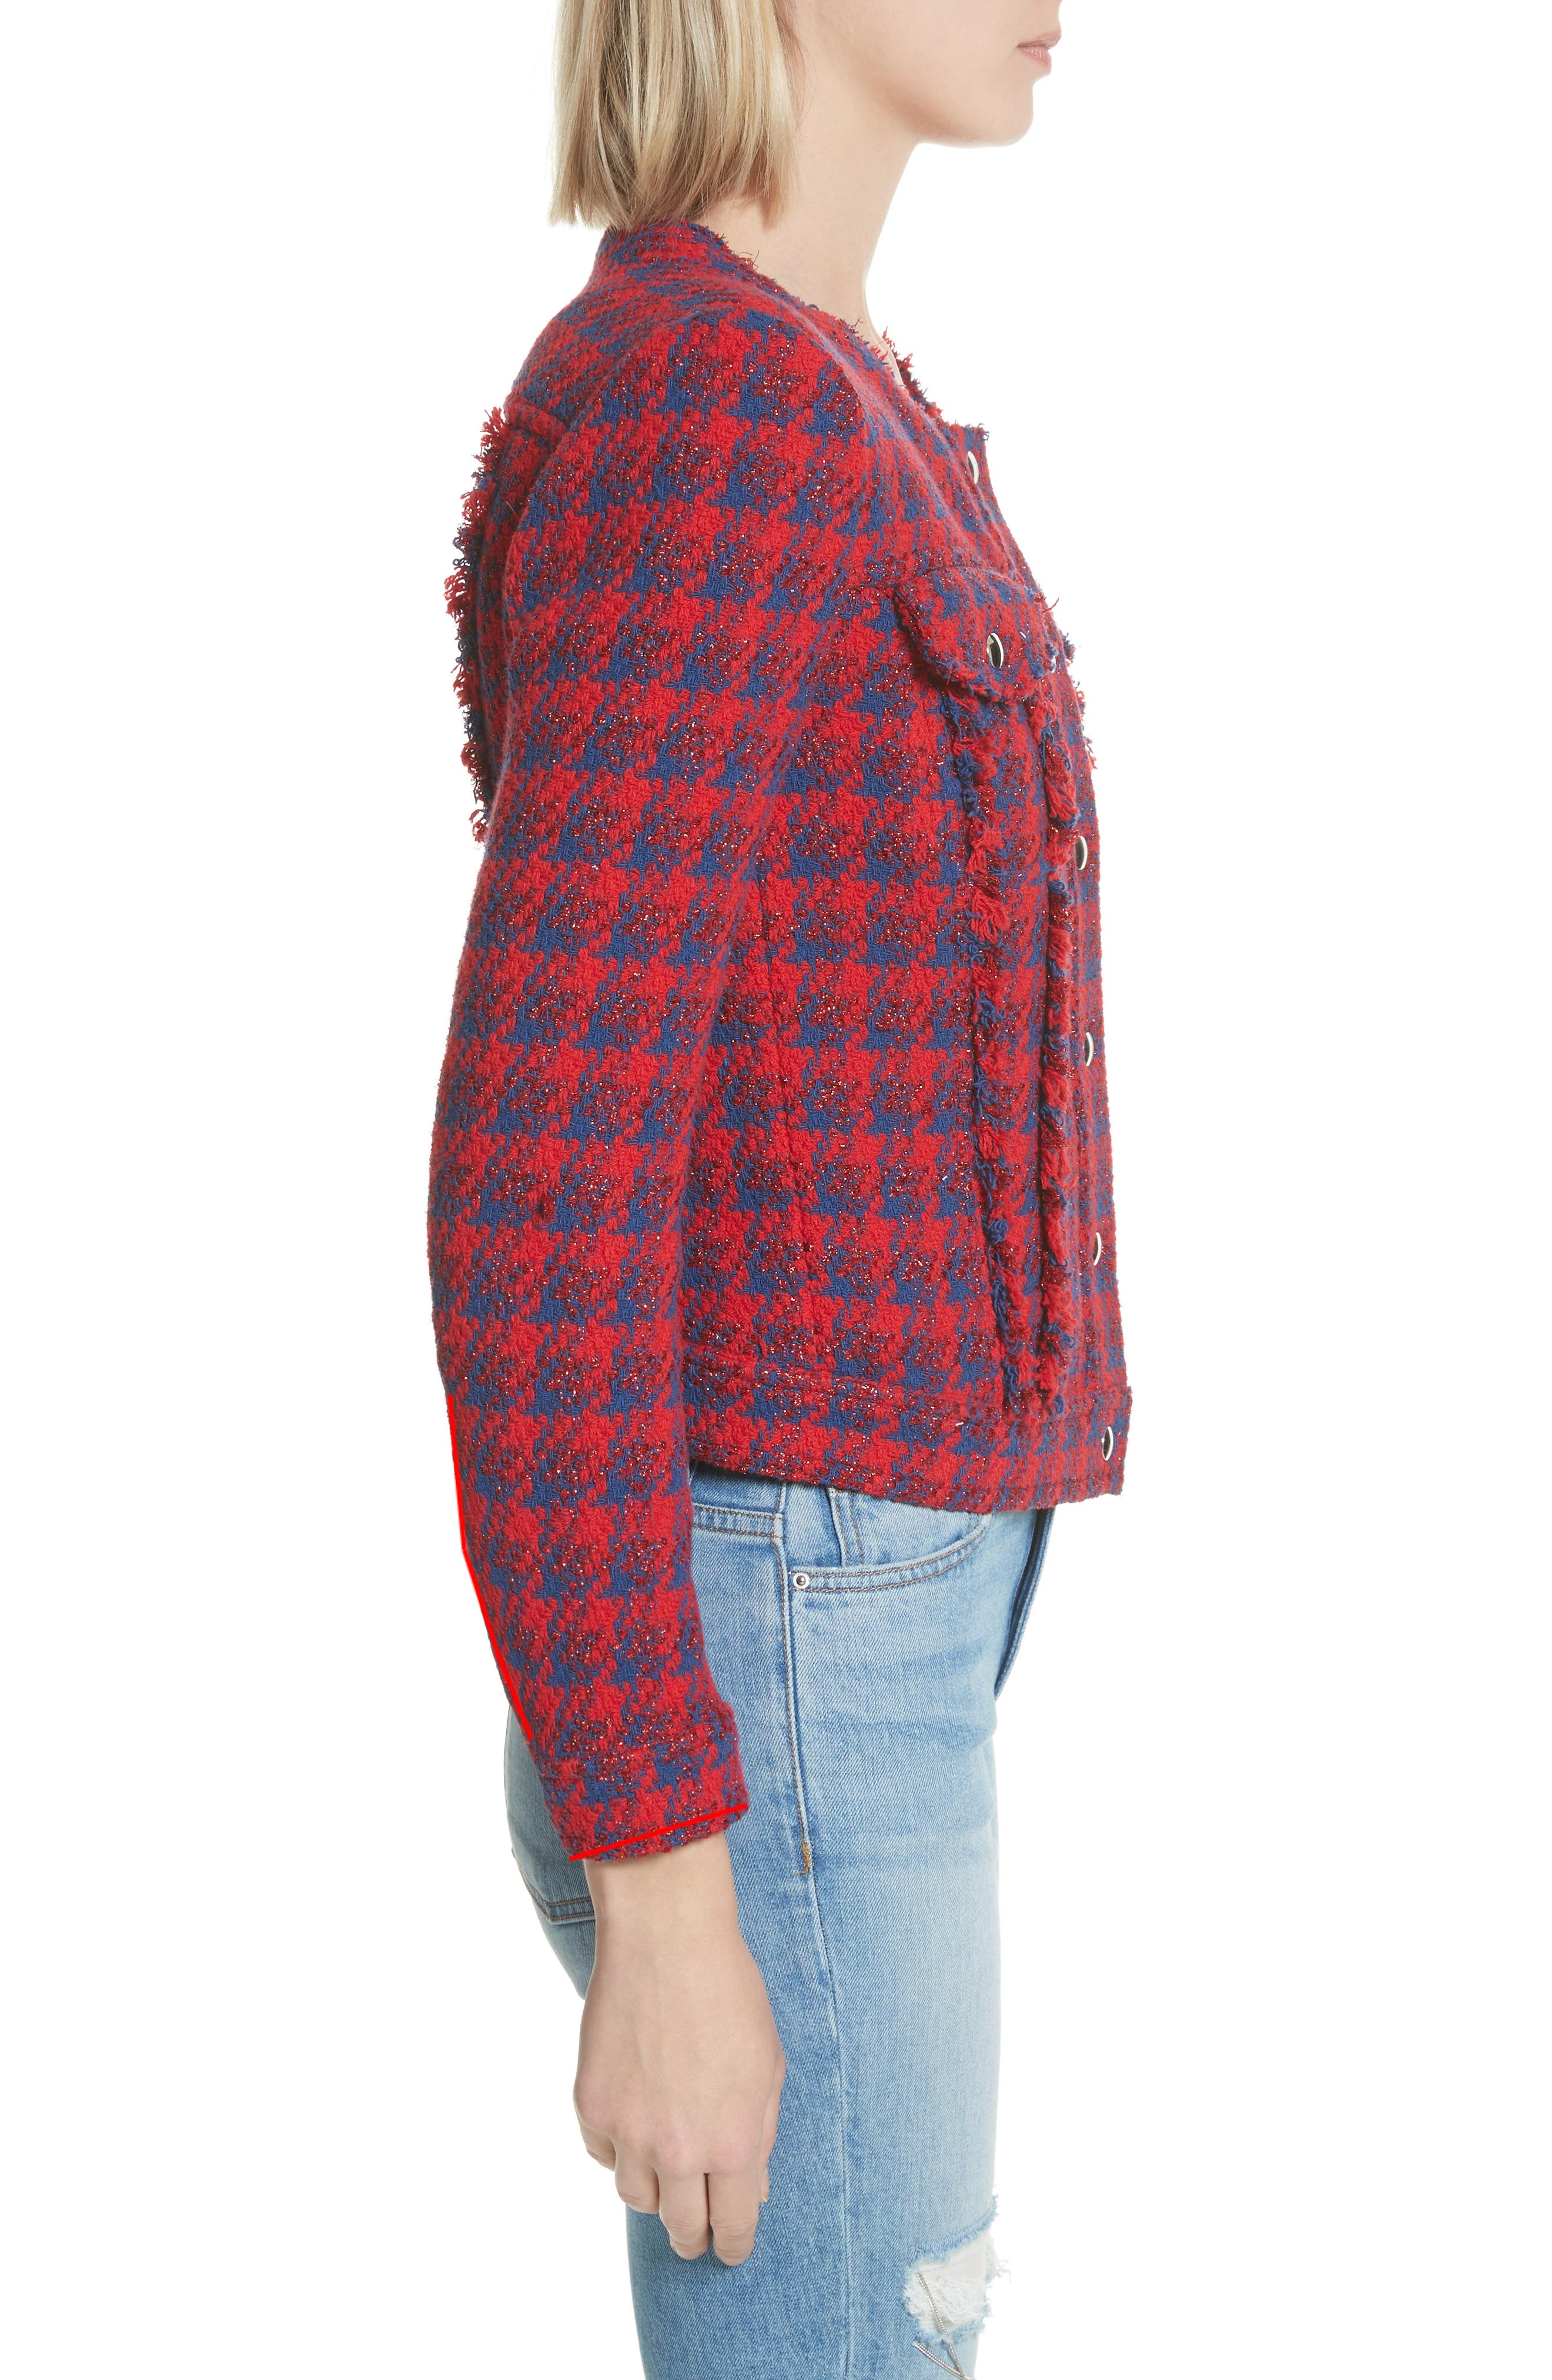 Quilombre Houndstooth Tweed Jacket,                             Alternate thumbnail 3, color,                             Red/ Blue